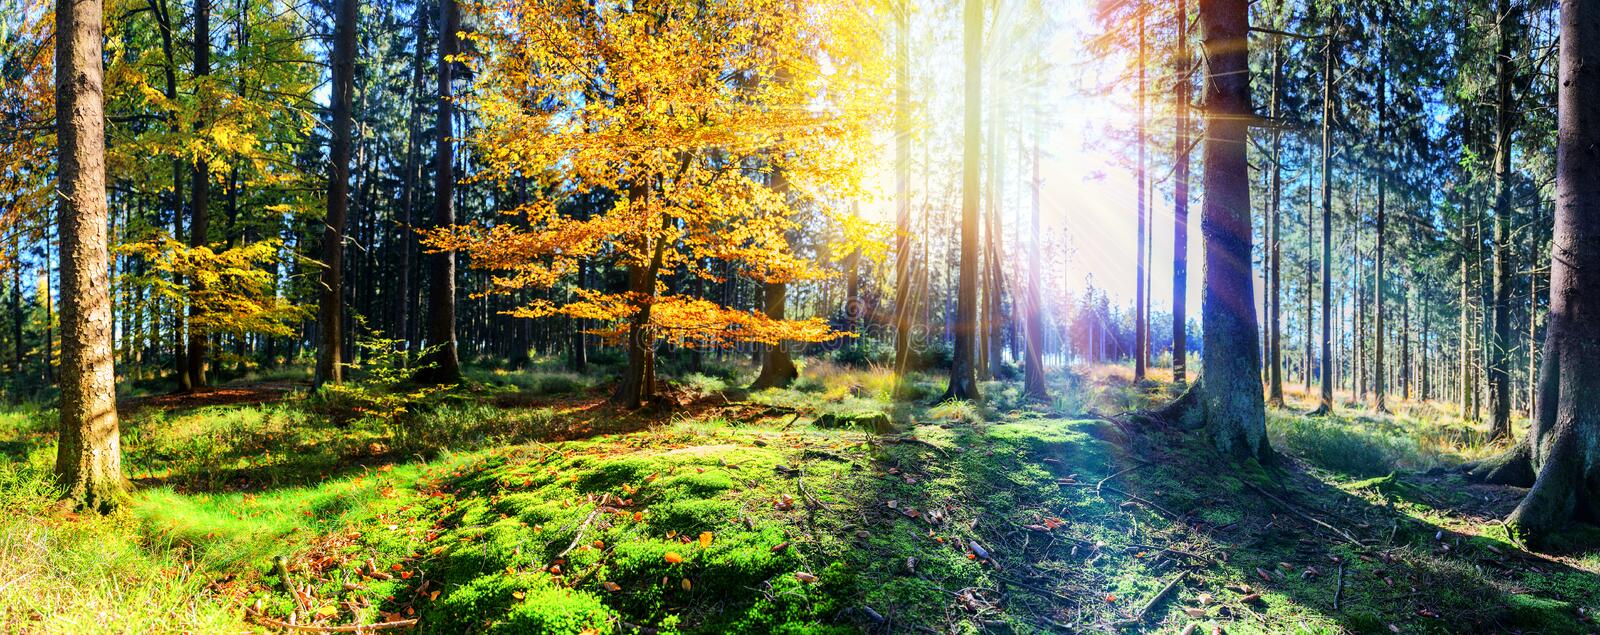 Panoramic autumn landscape in sunny forest. Fall nature background. At sunrise royalty free stock photo